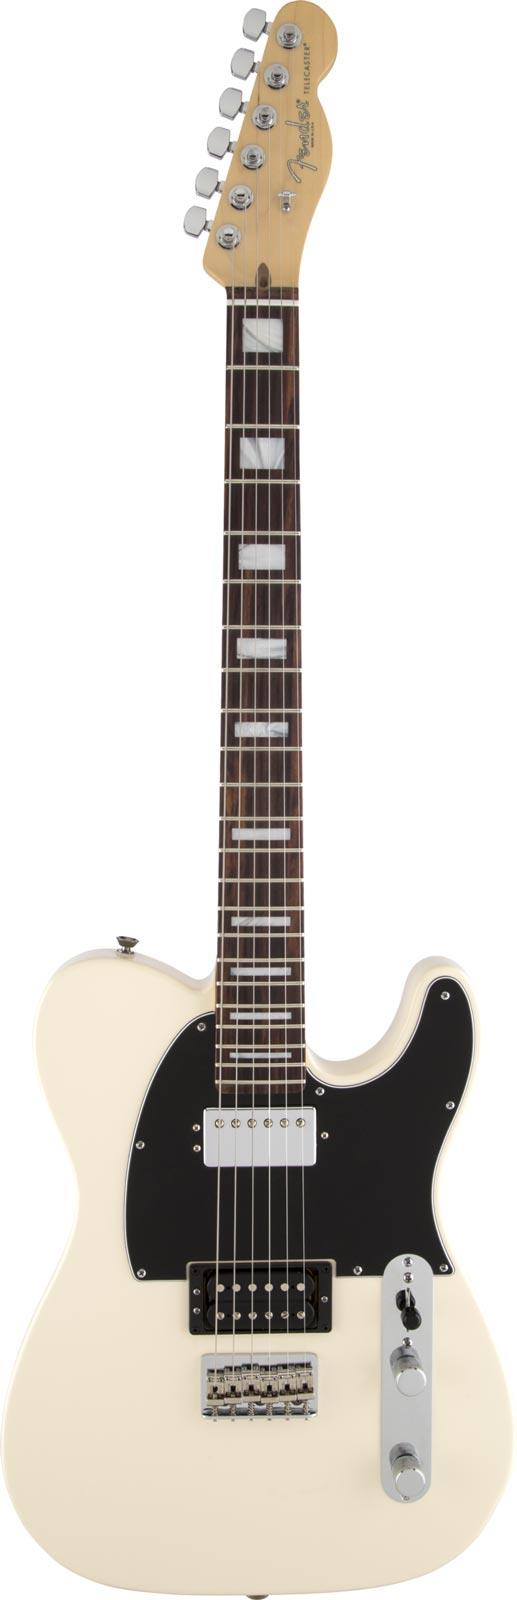 American standard telecaster vintage white